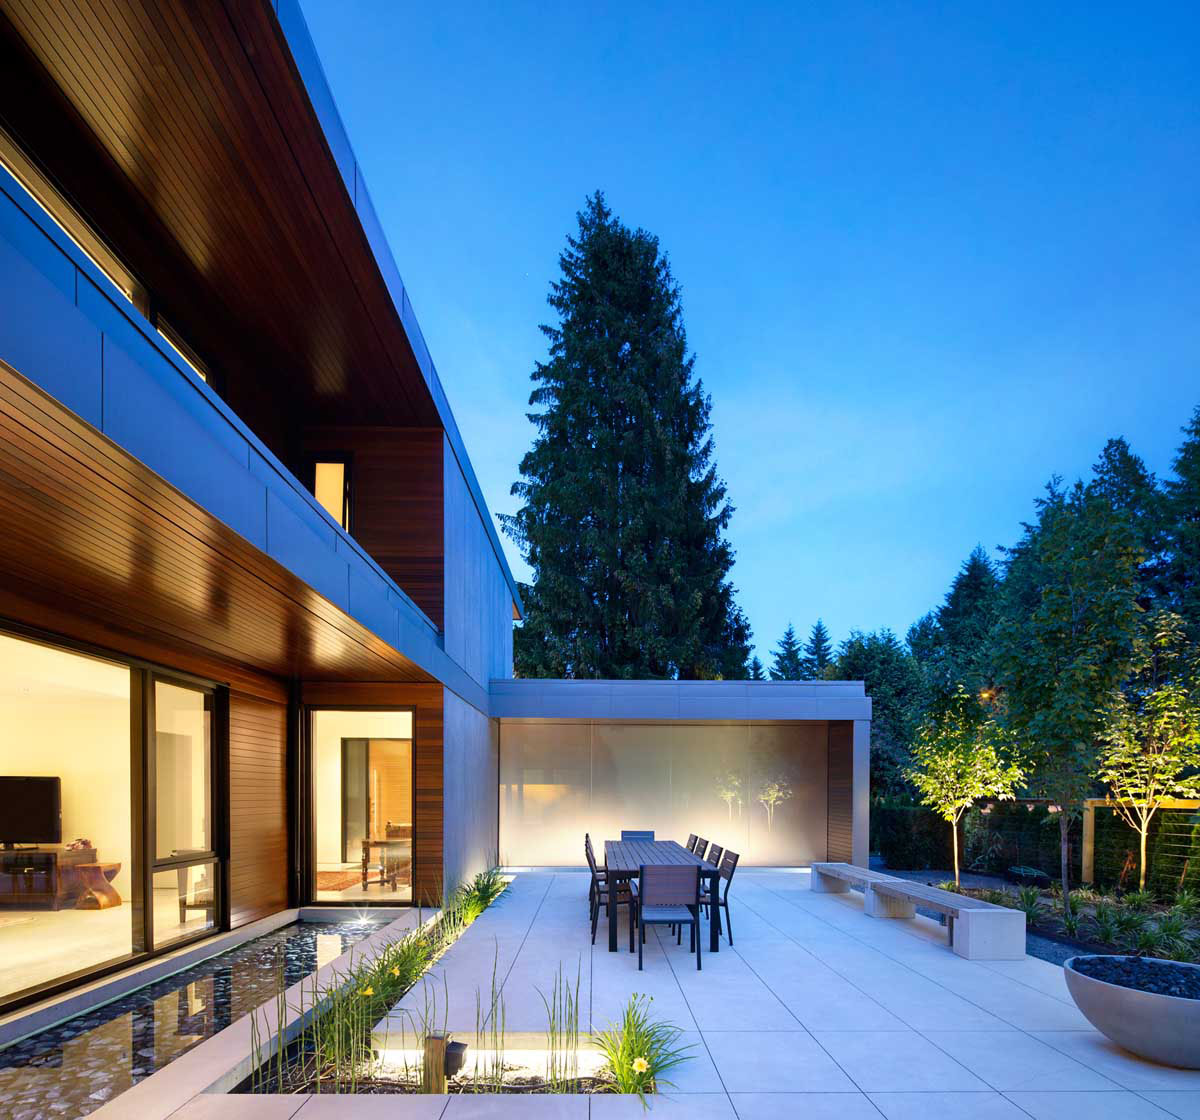 Contemporary Home Chilliwack By Randy Bens Architect: Exemplary H-Shaped Contemporary Family Home In Canada